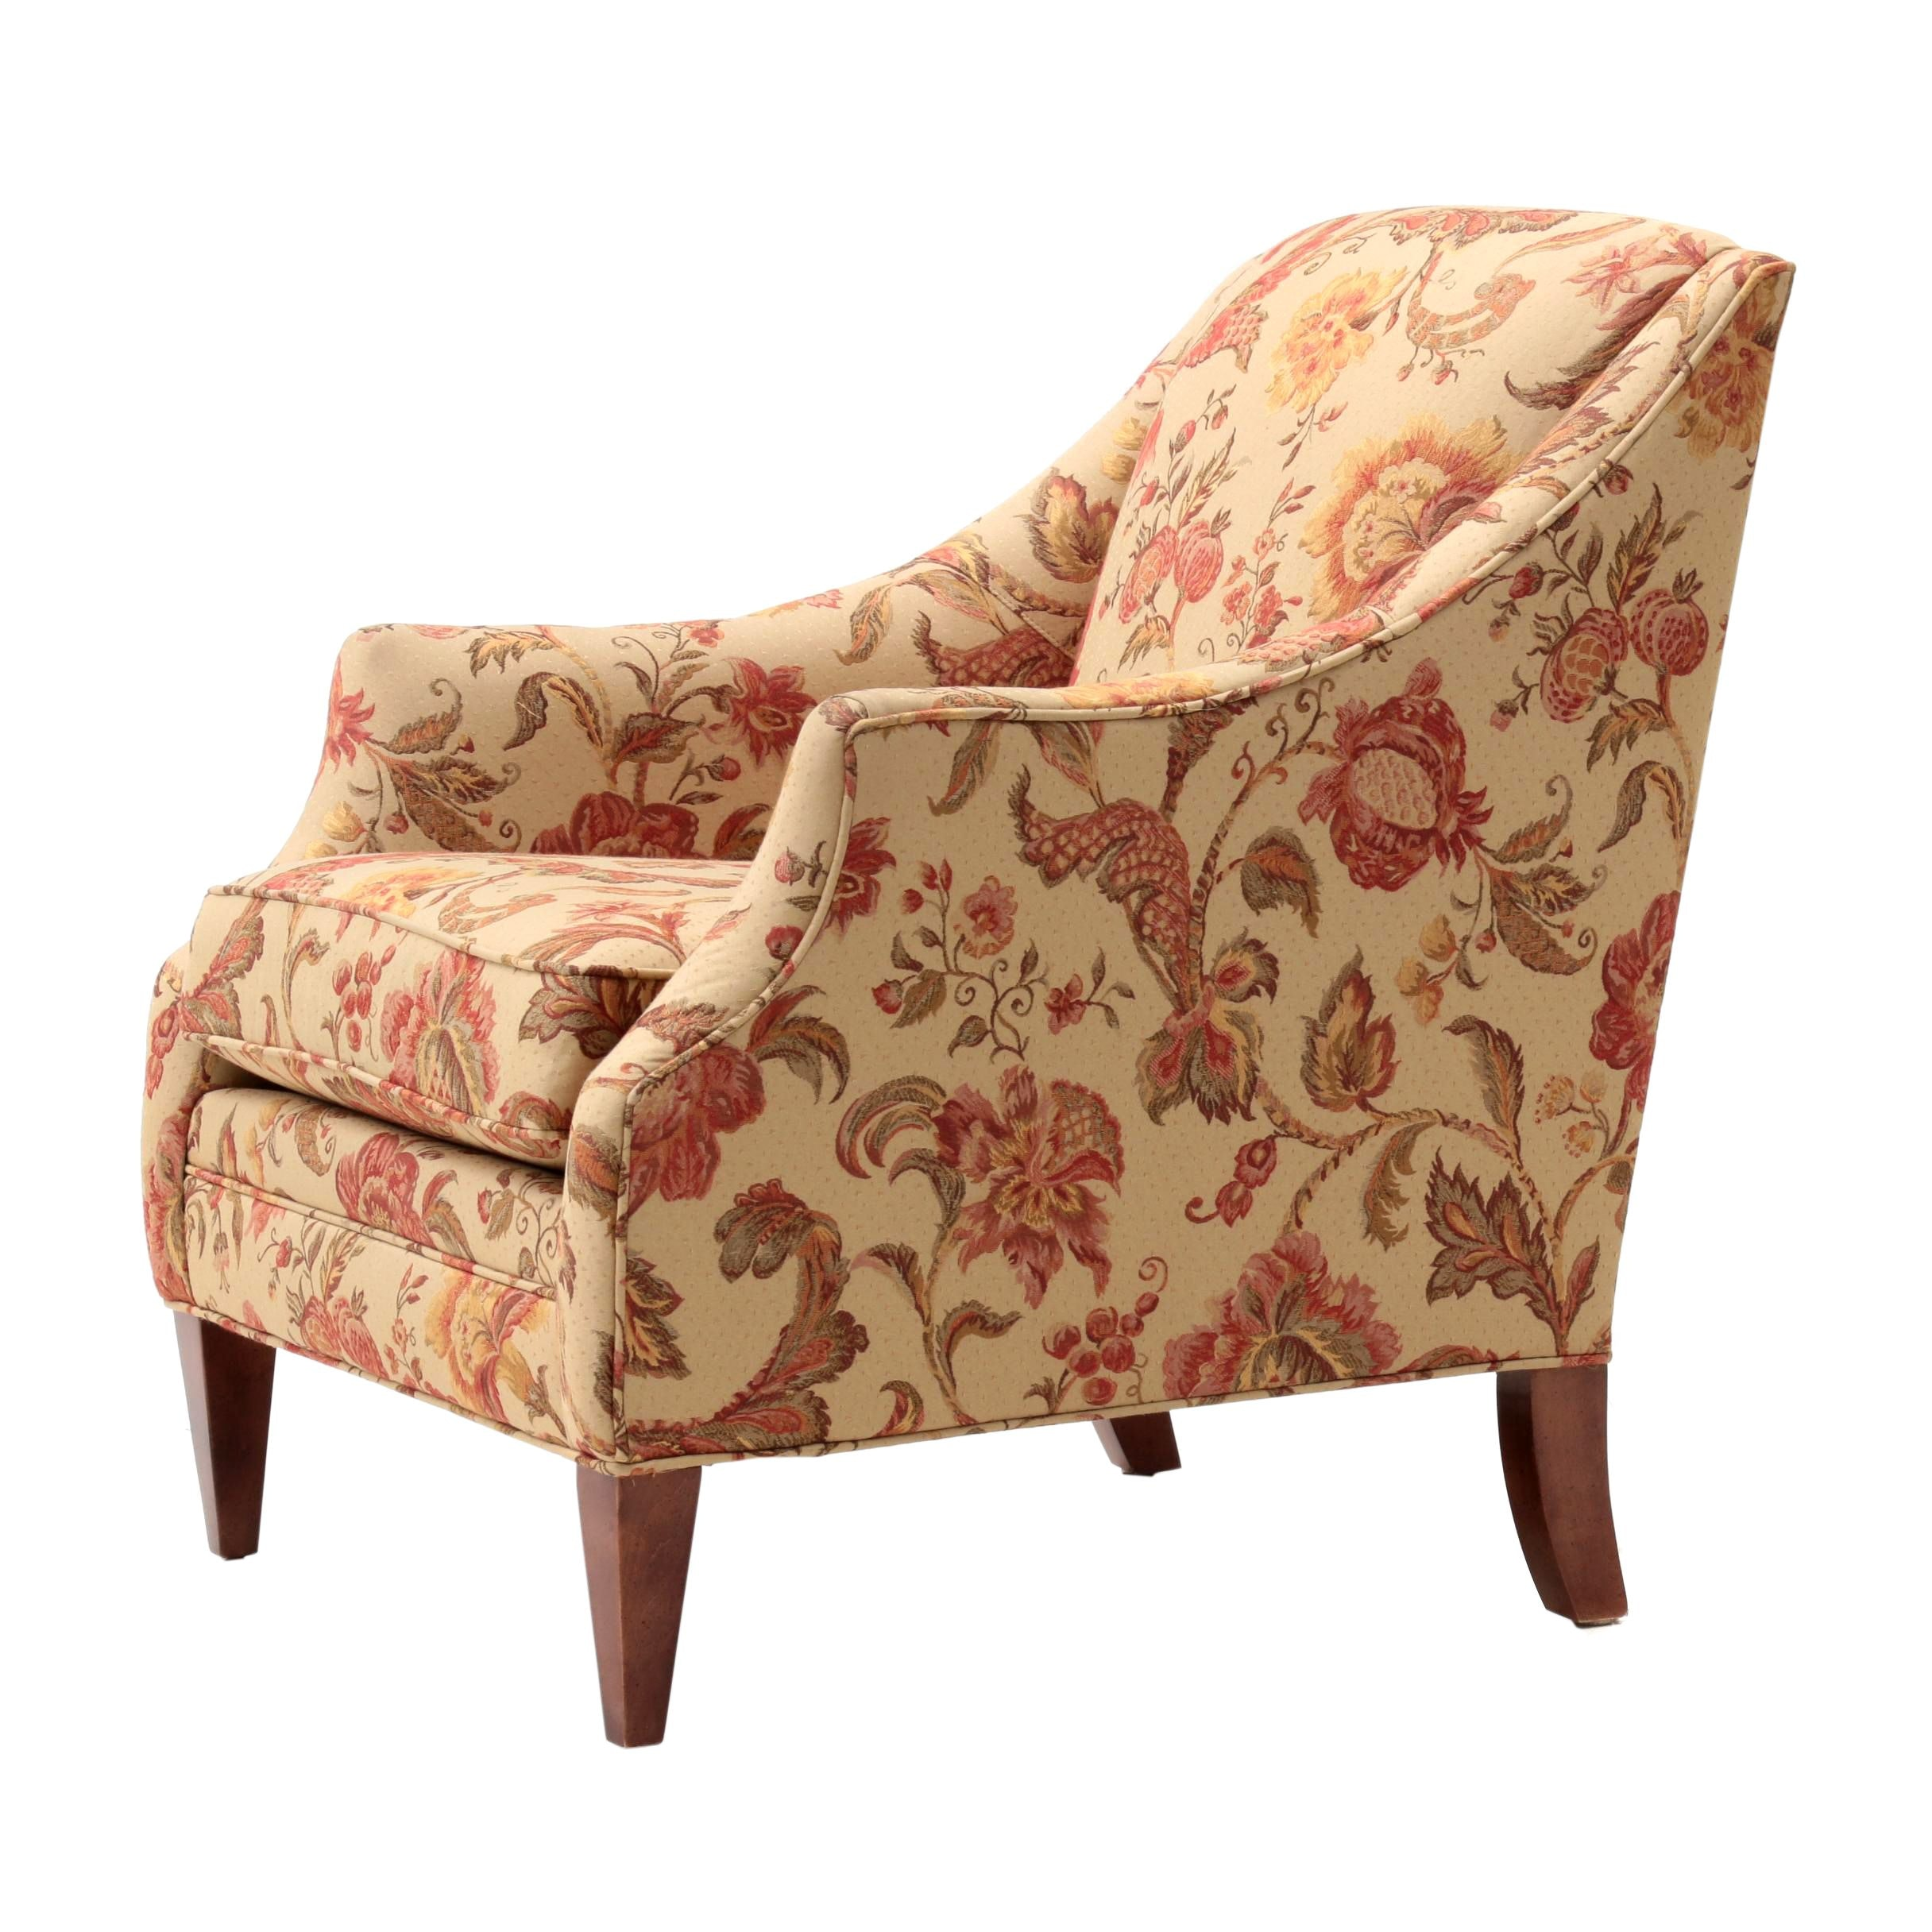 Contemporary Upholstered Arm Chair by Same Moore Furniture